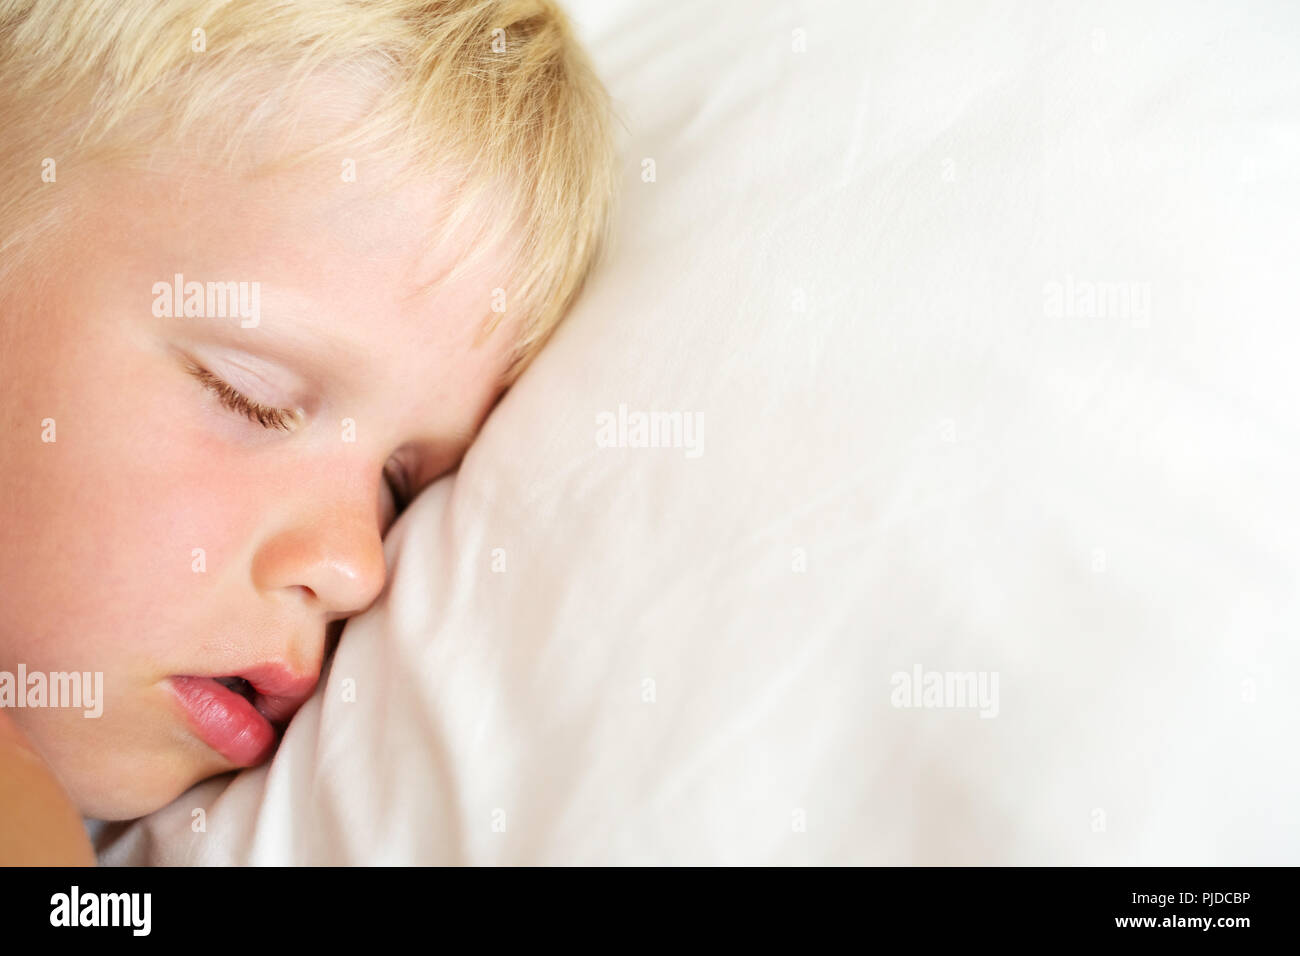 Blondy little boy sleeping on white pillow. Sweet dream concept. Top view. - Stock Image